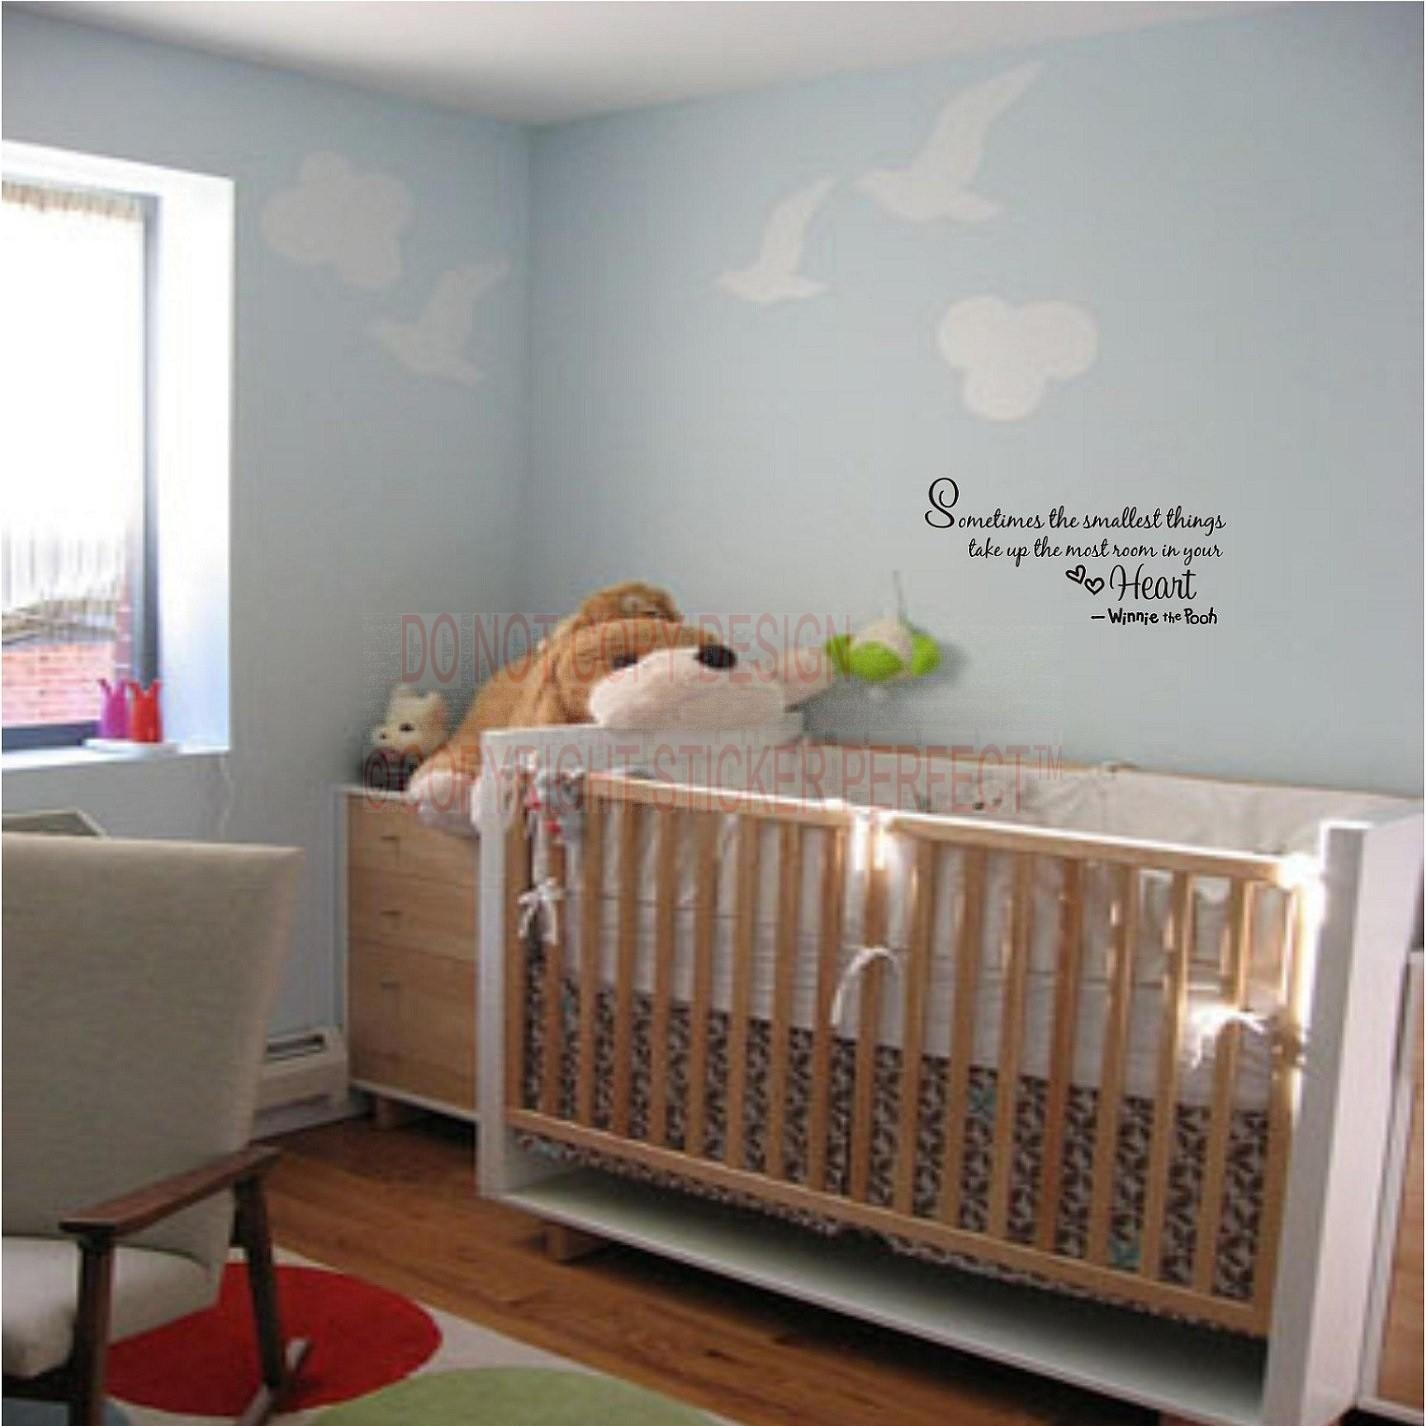 Best Sellers Pertaining To Winnie The Pooh Nursery Quotes Wall Art (Image 4 of 20)